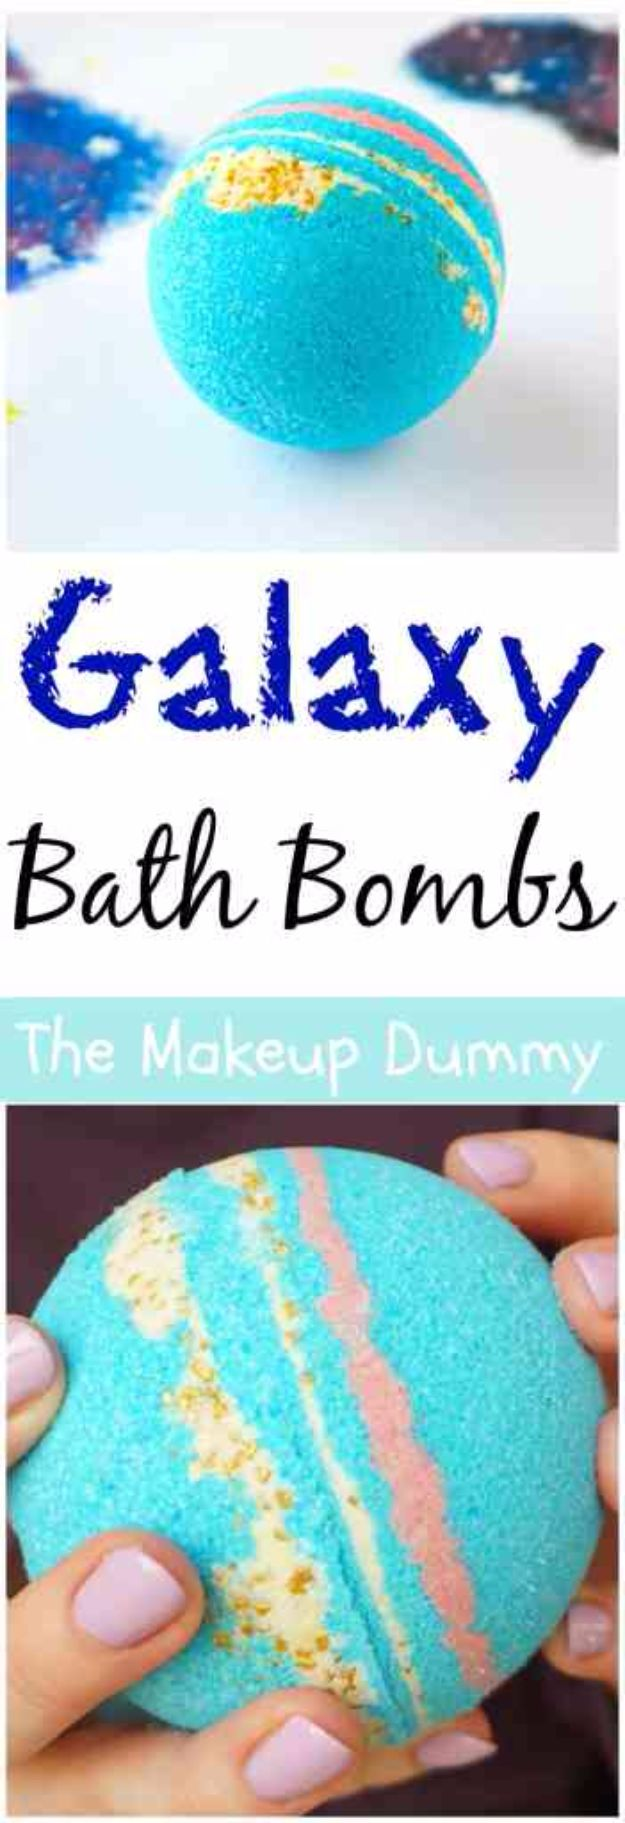 Galaxy DIY Crafts - DIY Galaxy Bath Bombs - Easy Room Decor, Cool Clothes, Fun Fabric Ideas and Painting Projects - Food, Cookies and Cupcake Recipes - Nebula Galaxy In A Jar - Art for Your Bedroom - Shirt, Backpack, Soap, Decorations for Teens, Kids and Adults http://diyprojectsforteens.com/galaxy-crafts